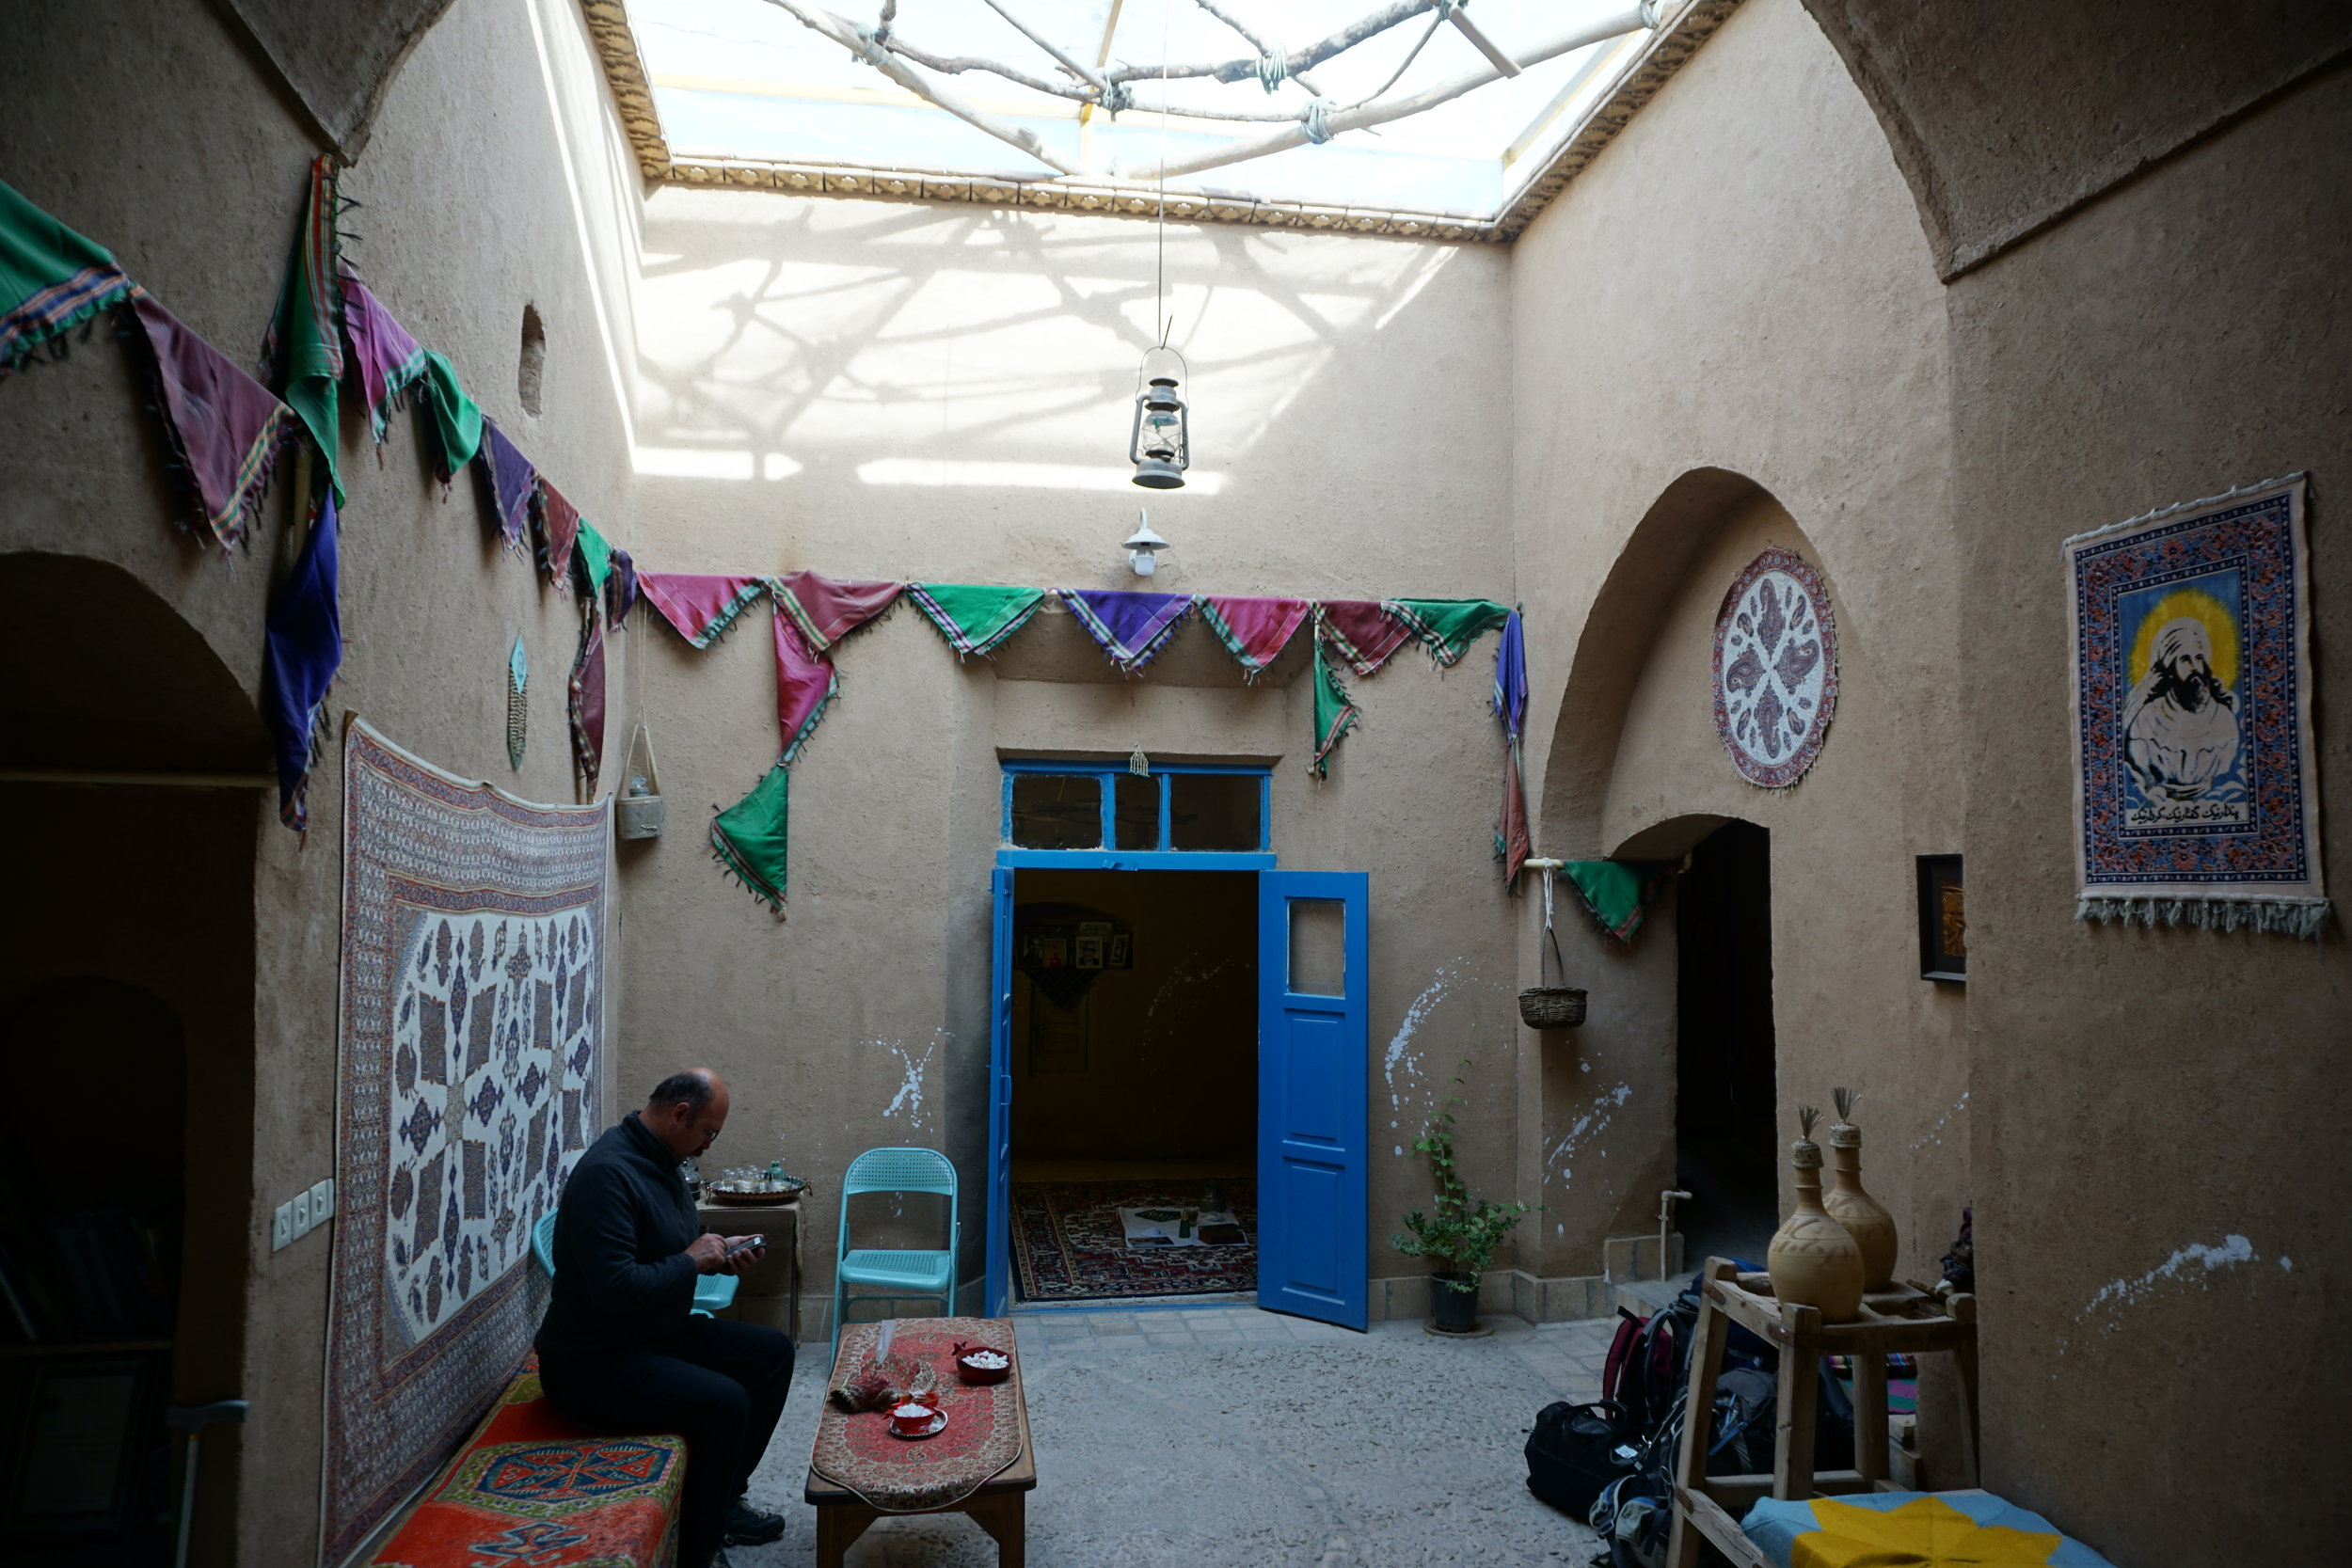 A quaint zoroastrian ecolodge in yazd iran called nartitee ecolodge